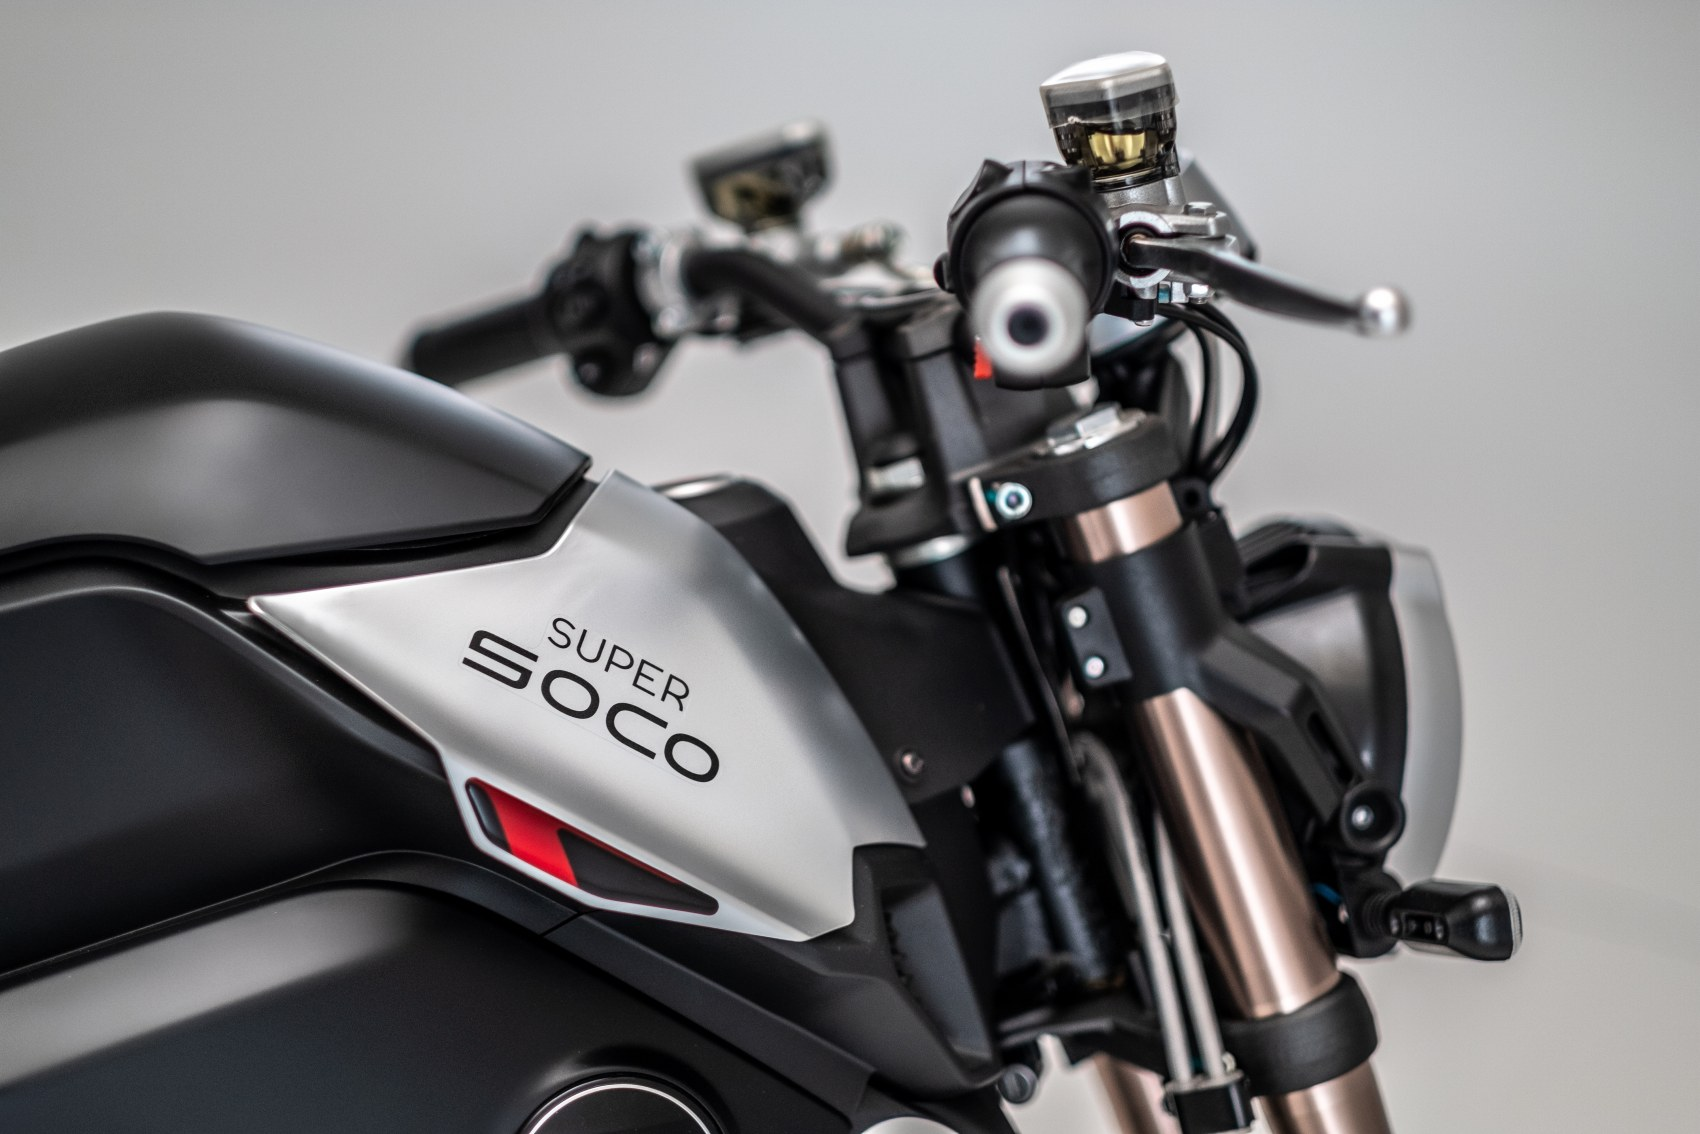 Super Soco TC Max electric motorcycle front